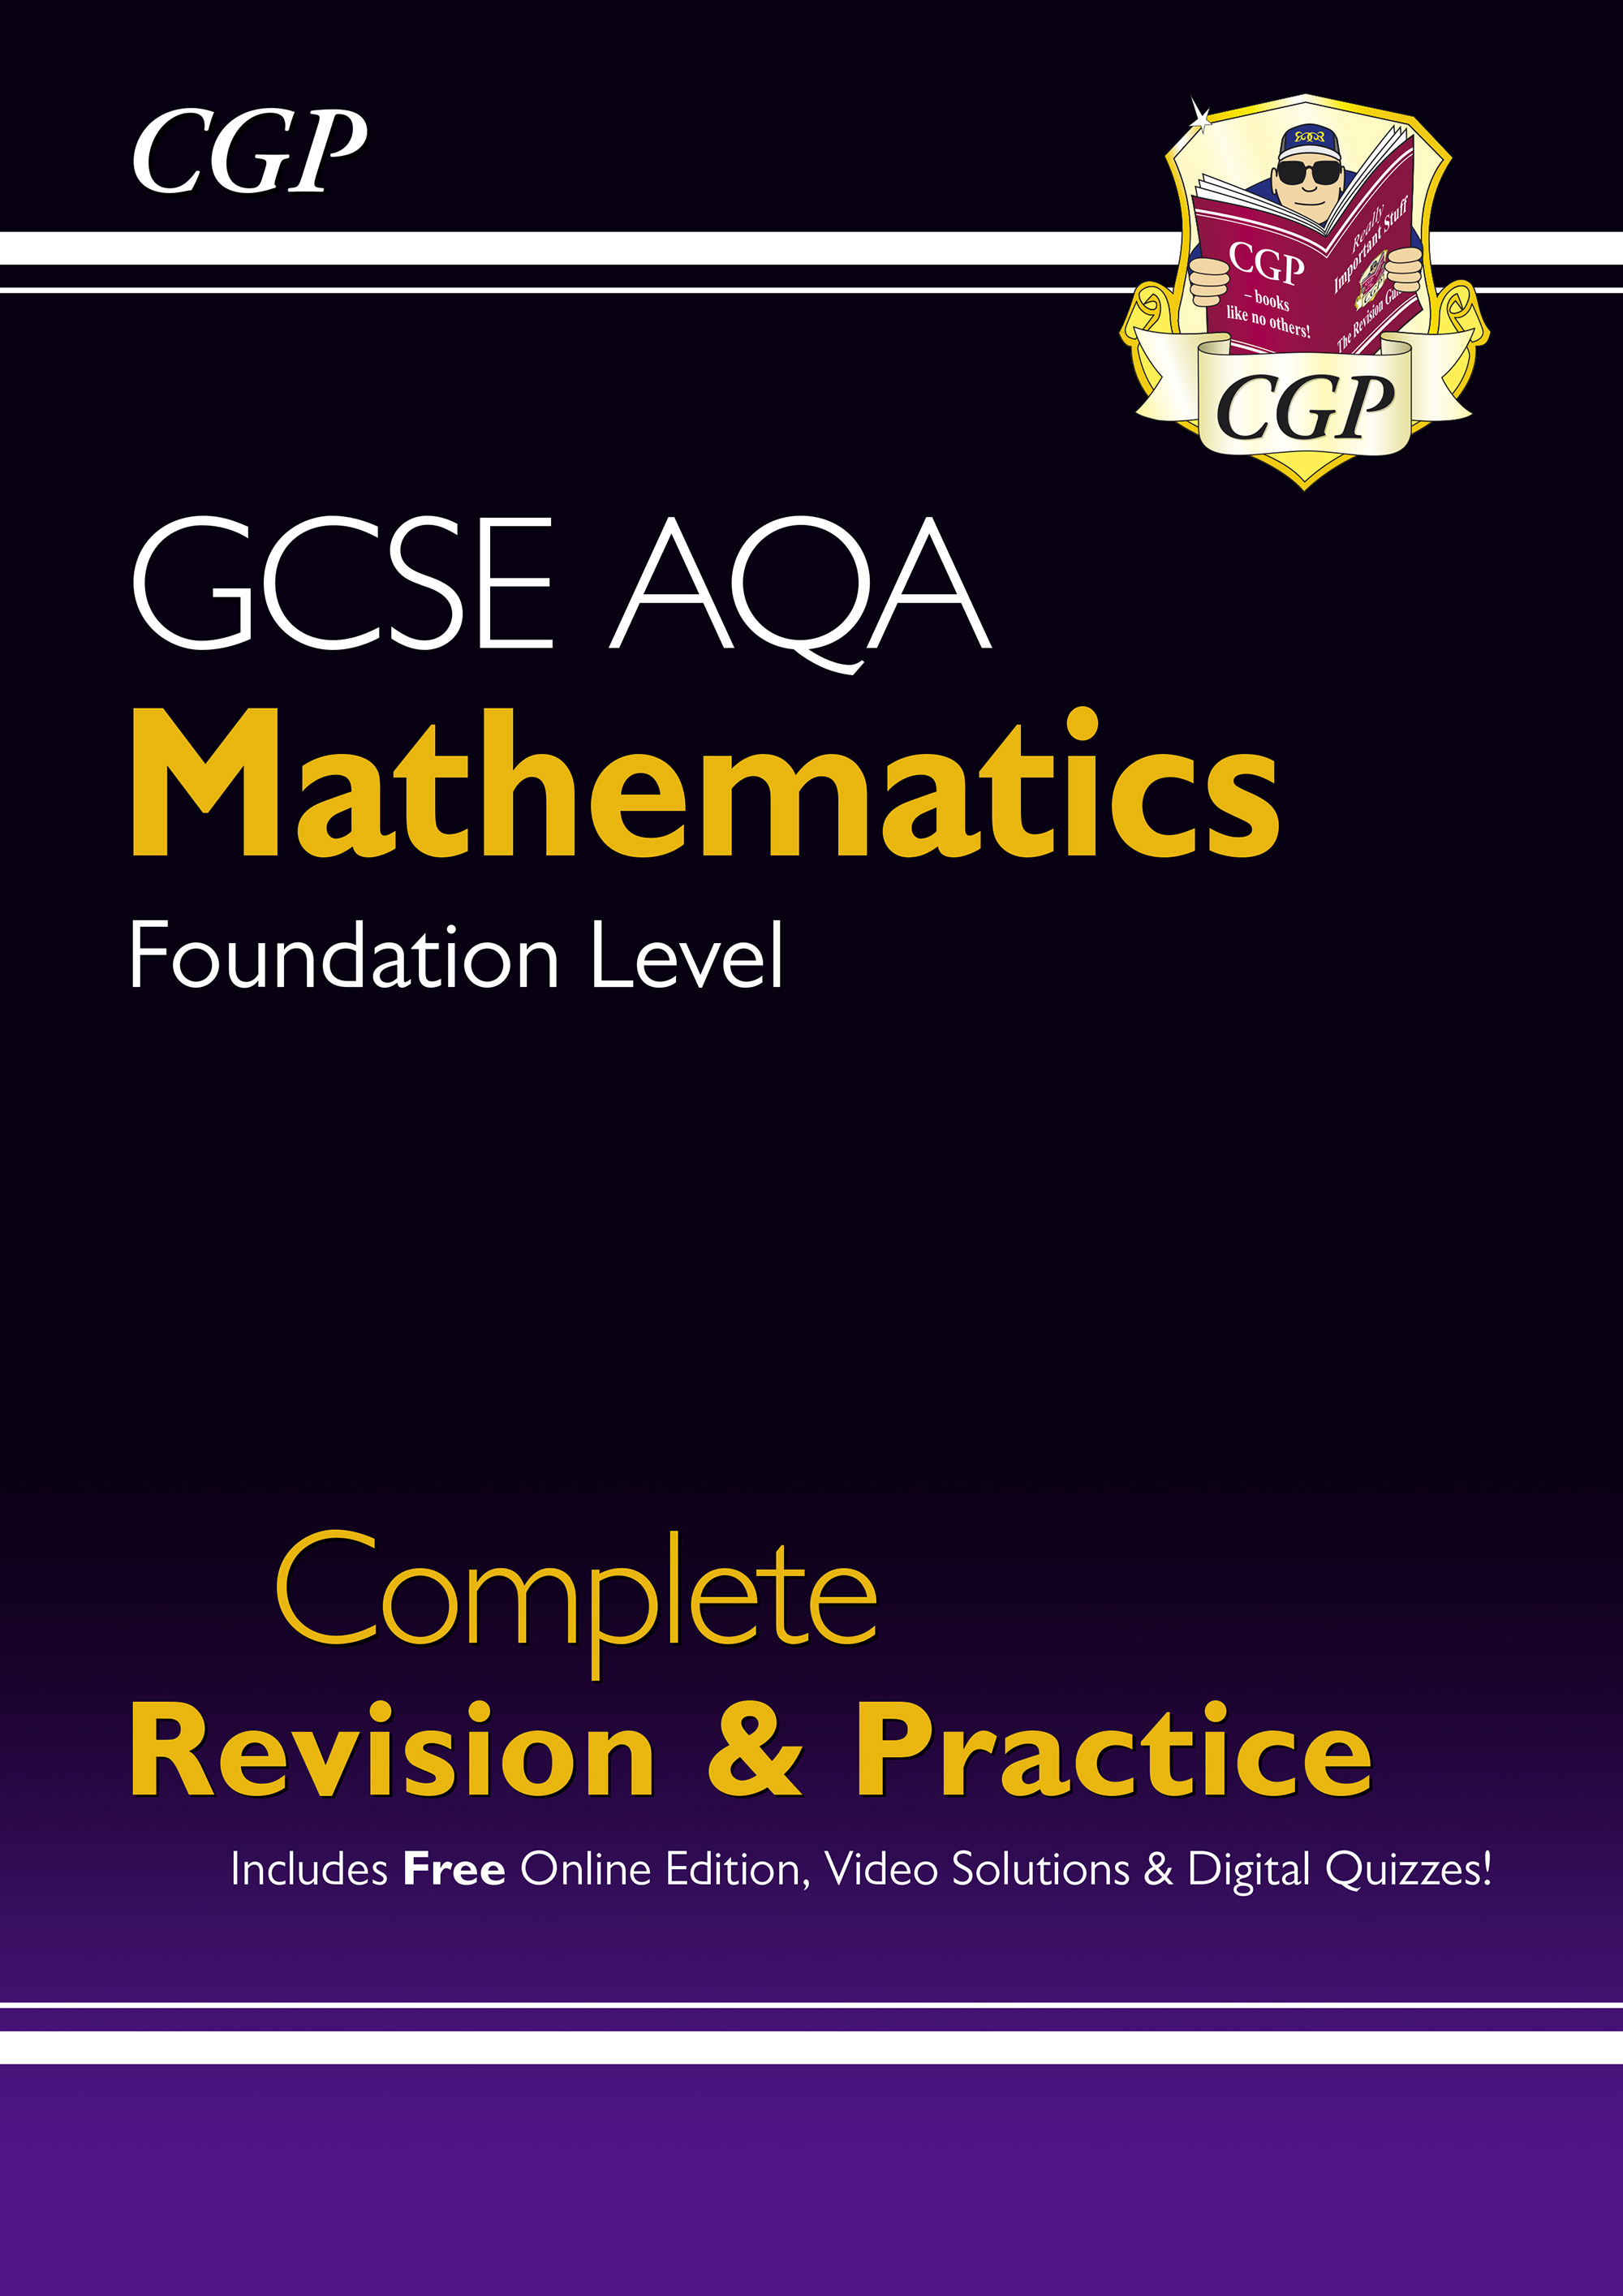 MQFS42D - New 2021 GCSE Maths AQA Complete Revision & Practice: Foundation Online Ed inc Videos & Qu